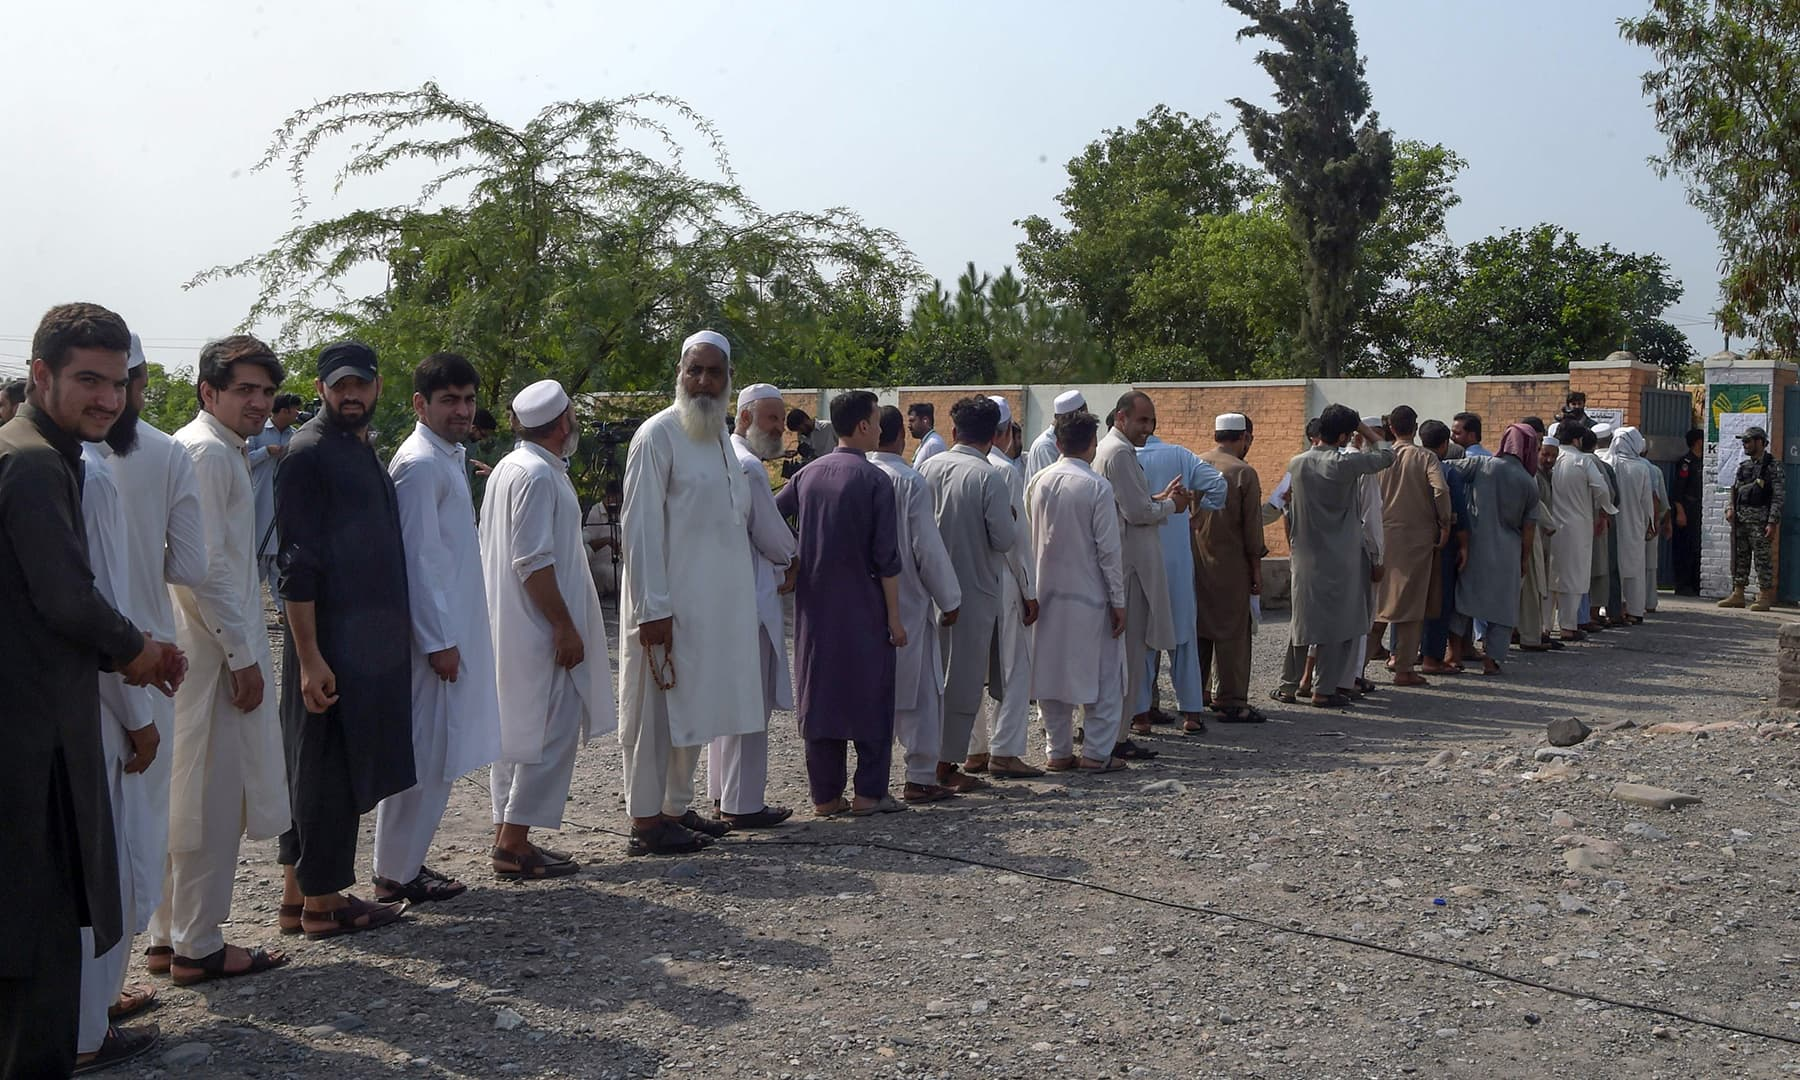 Voters line up outside a polling station for the first provincial elections in Jamrud. — AFP